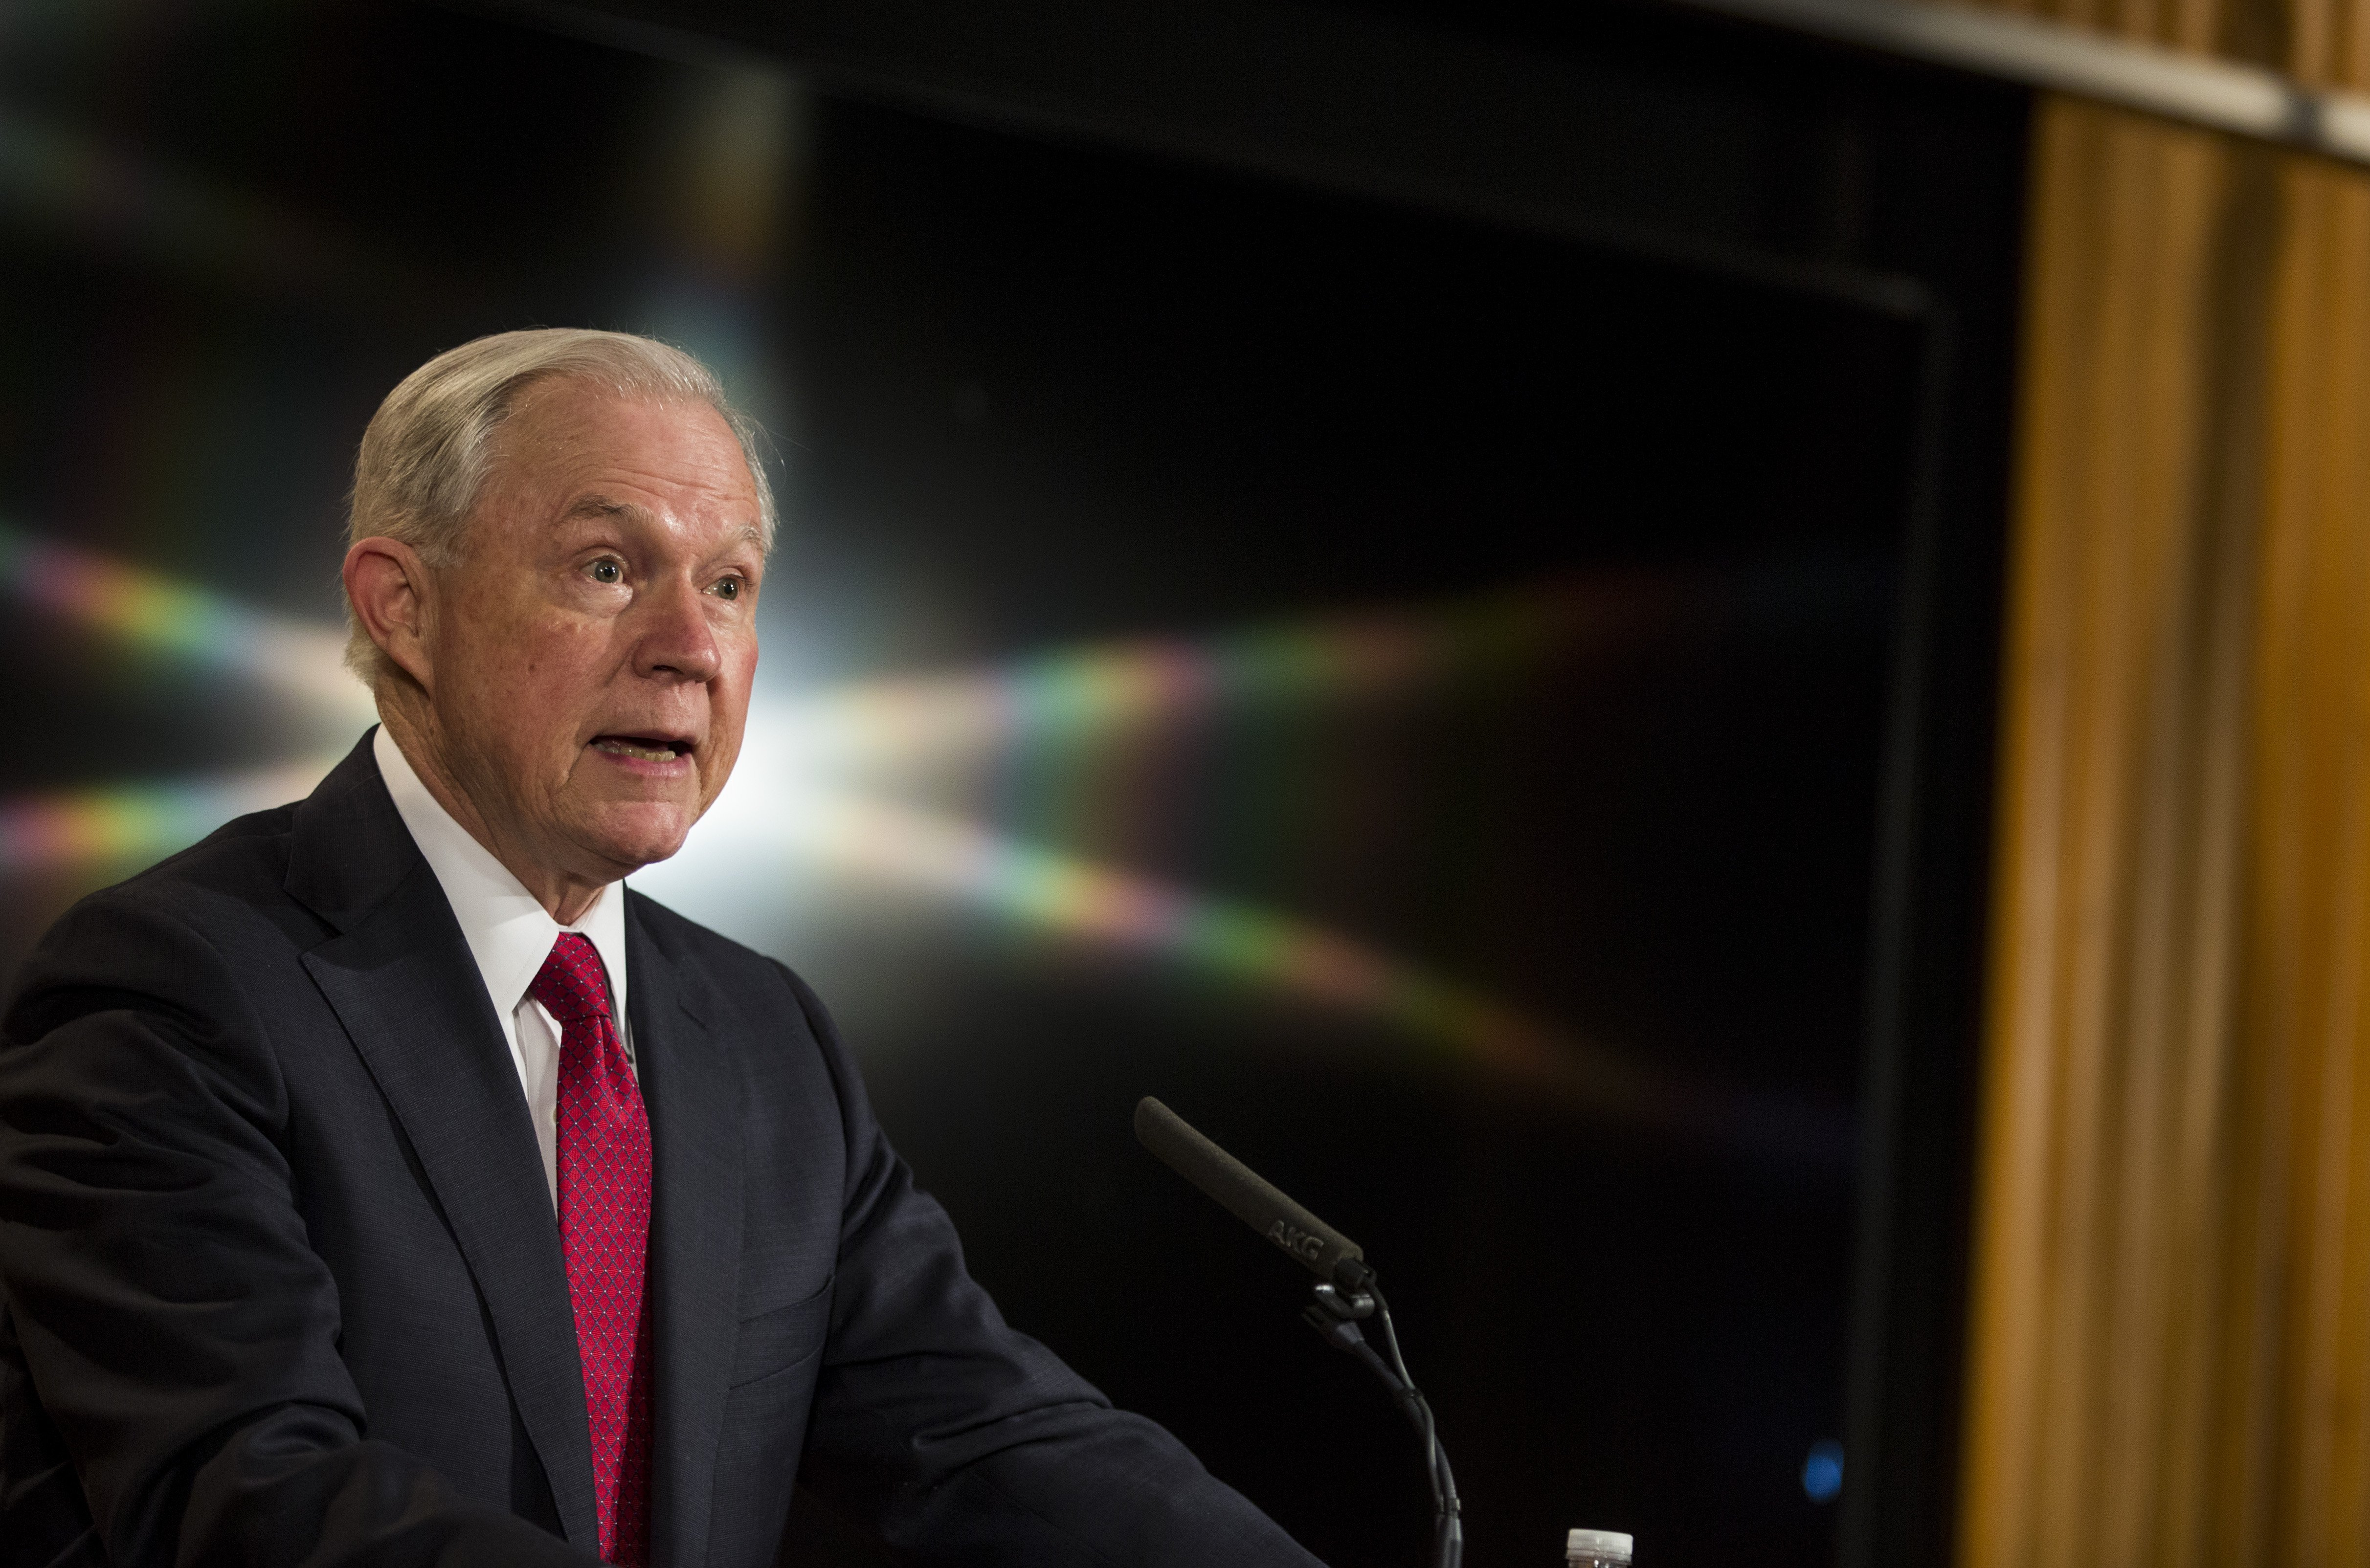 Sessions Appointed Prosecutor Months Ago to Investigate Possible Crimes Might Appoint 2nd Special Prosecutor